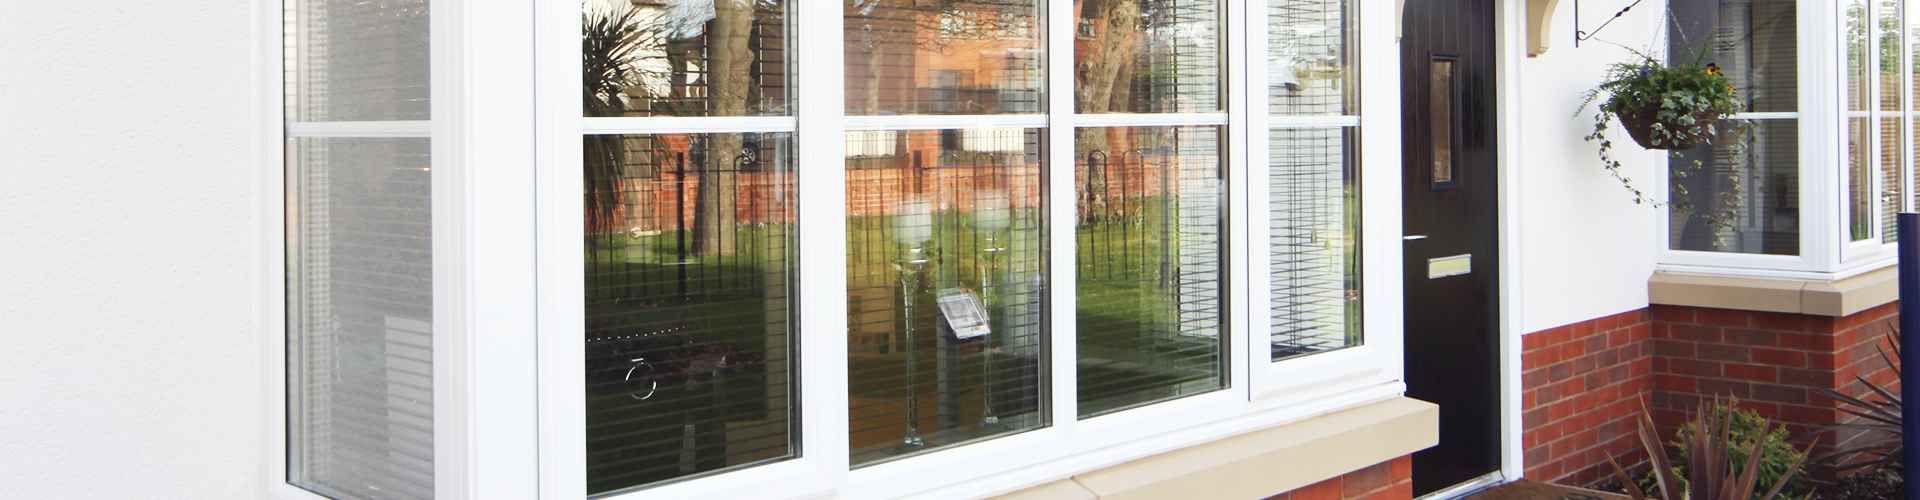 double glazing bay window quotes